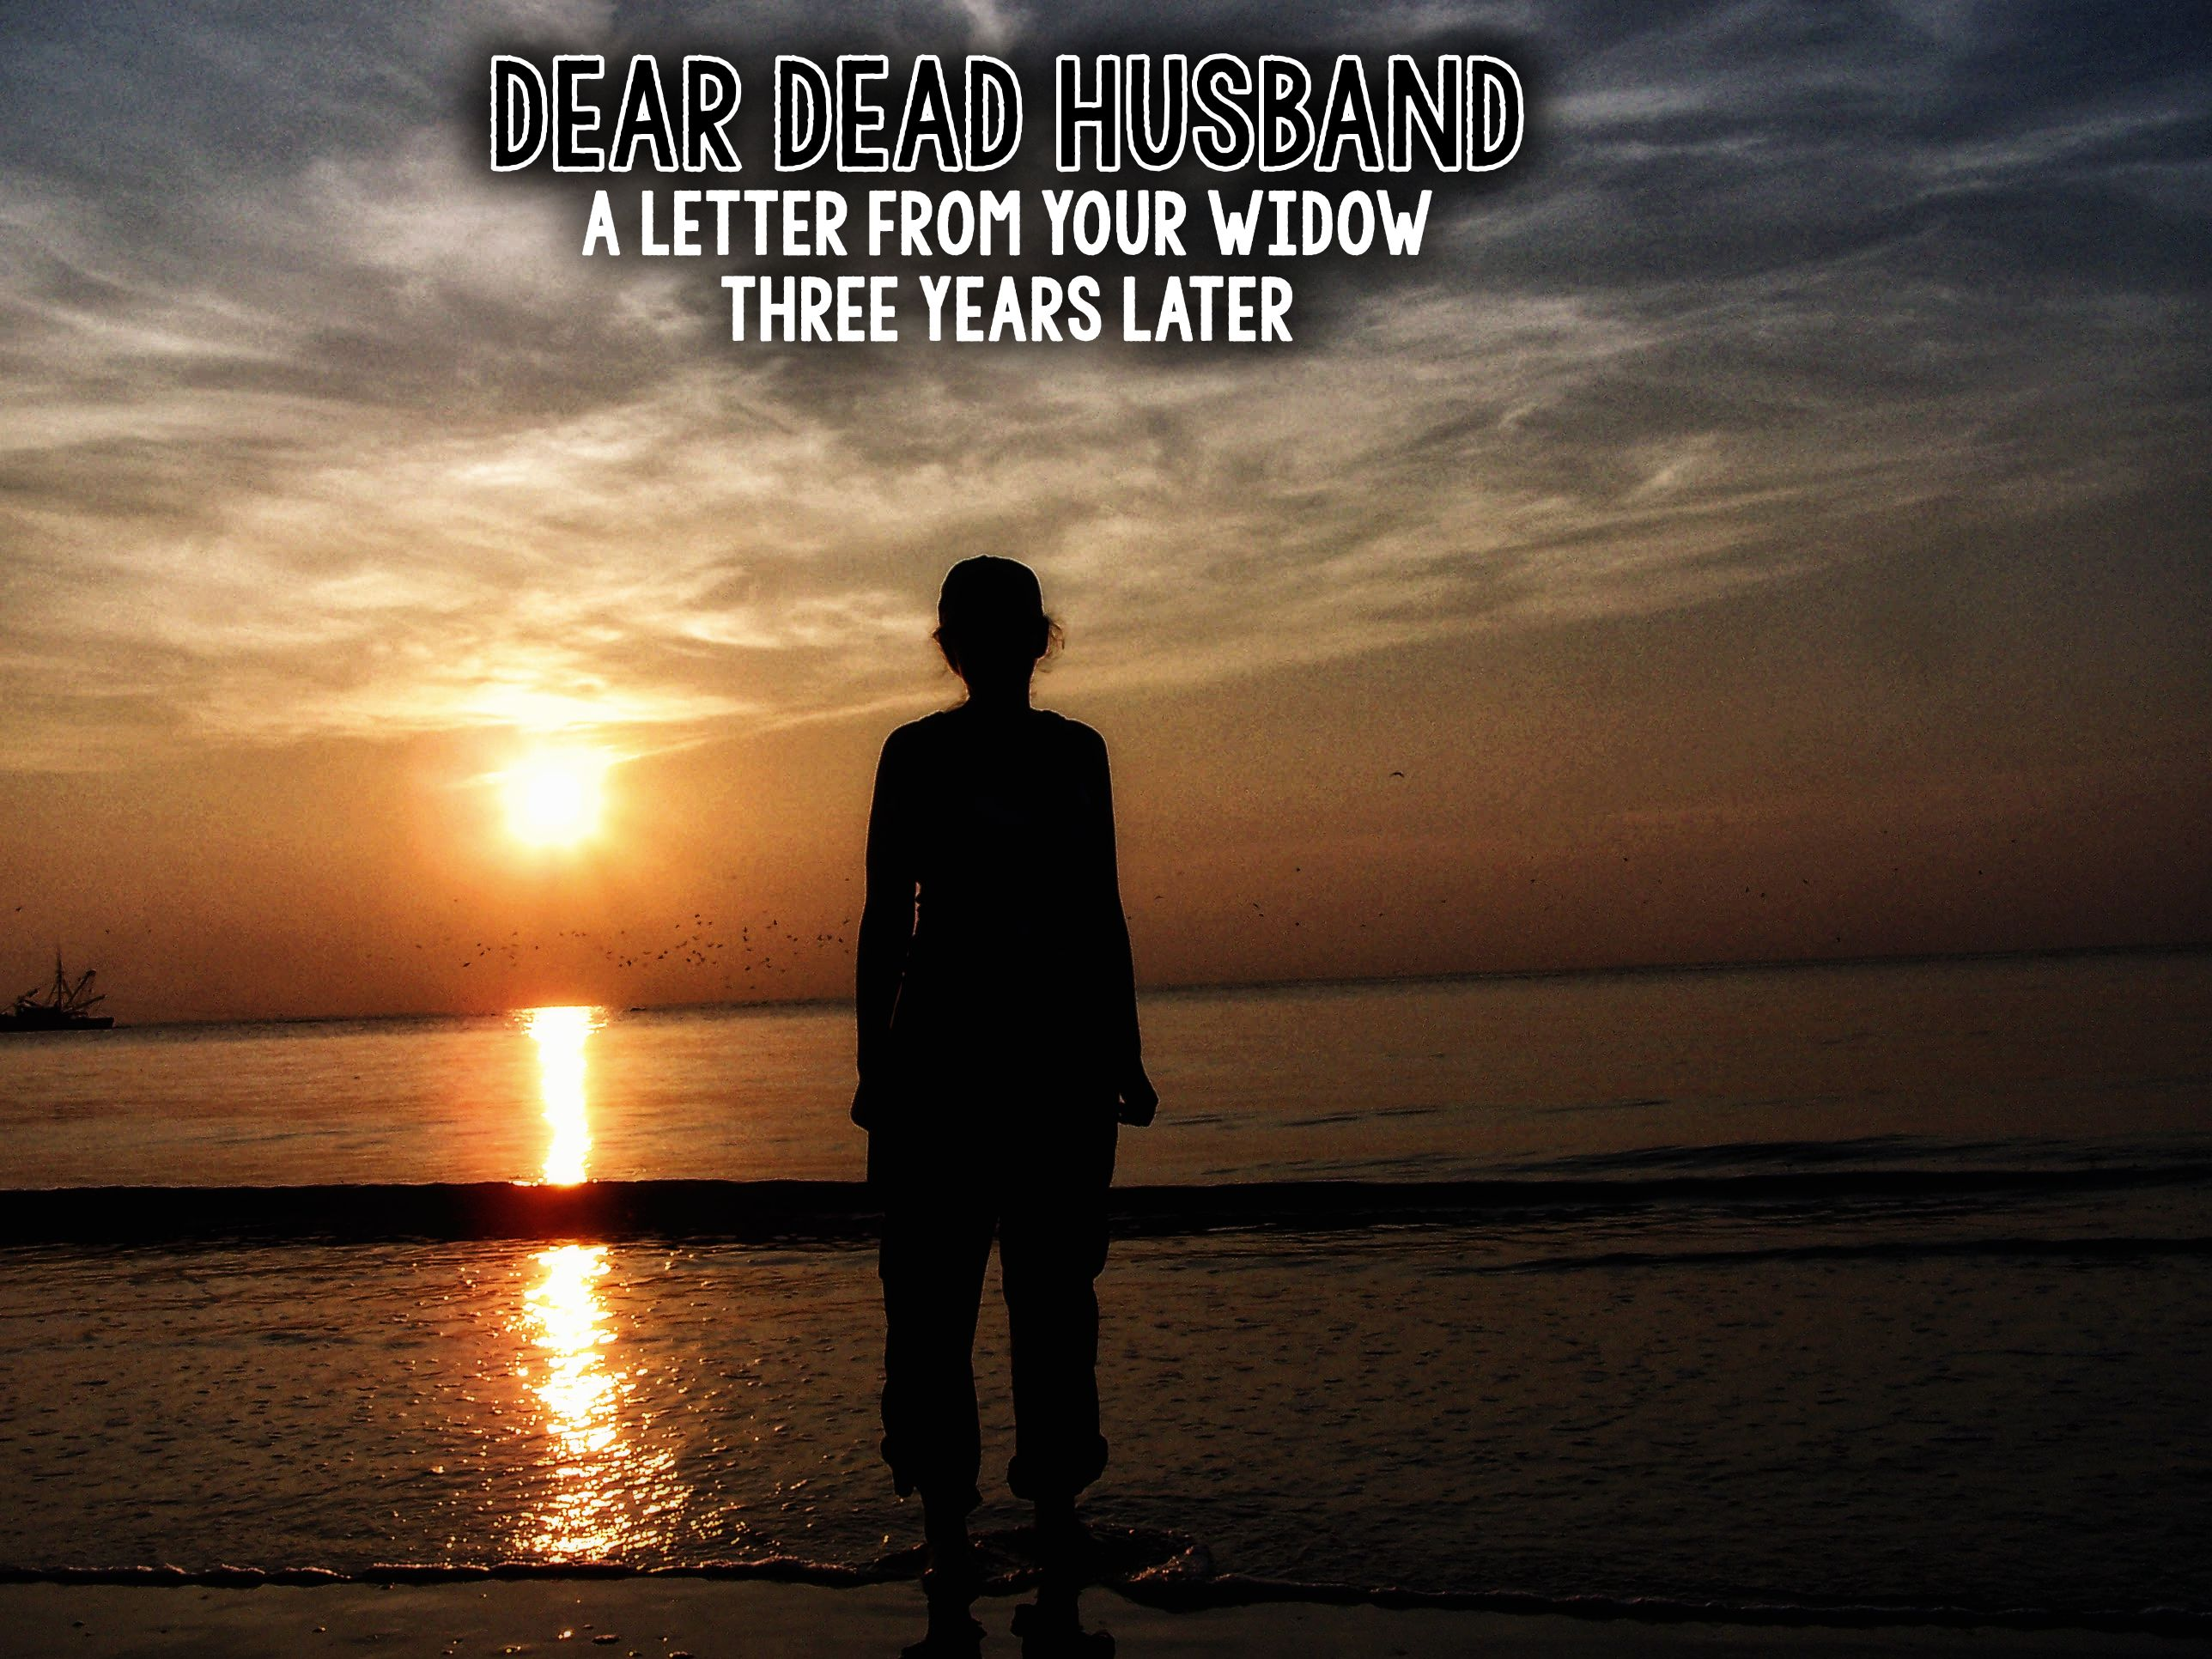 Dear Dead husband A Letter from your Widow